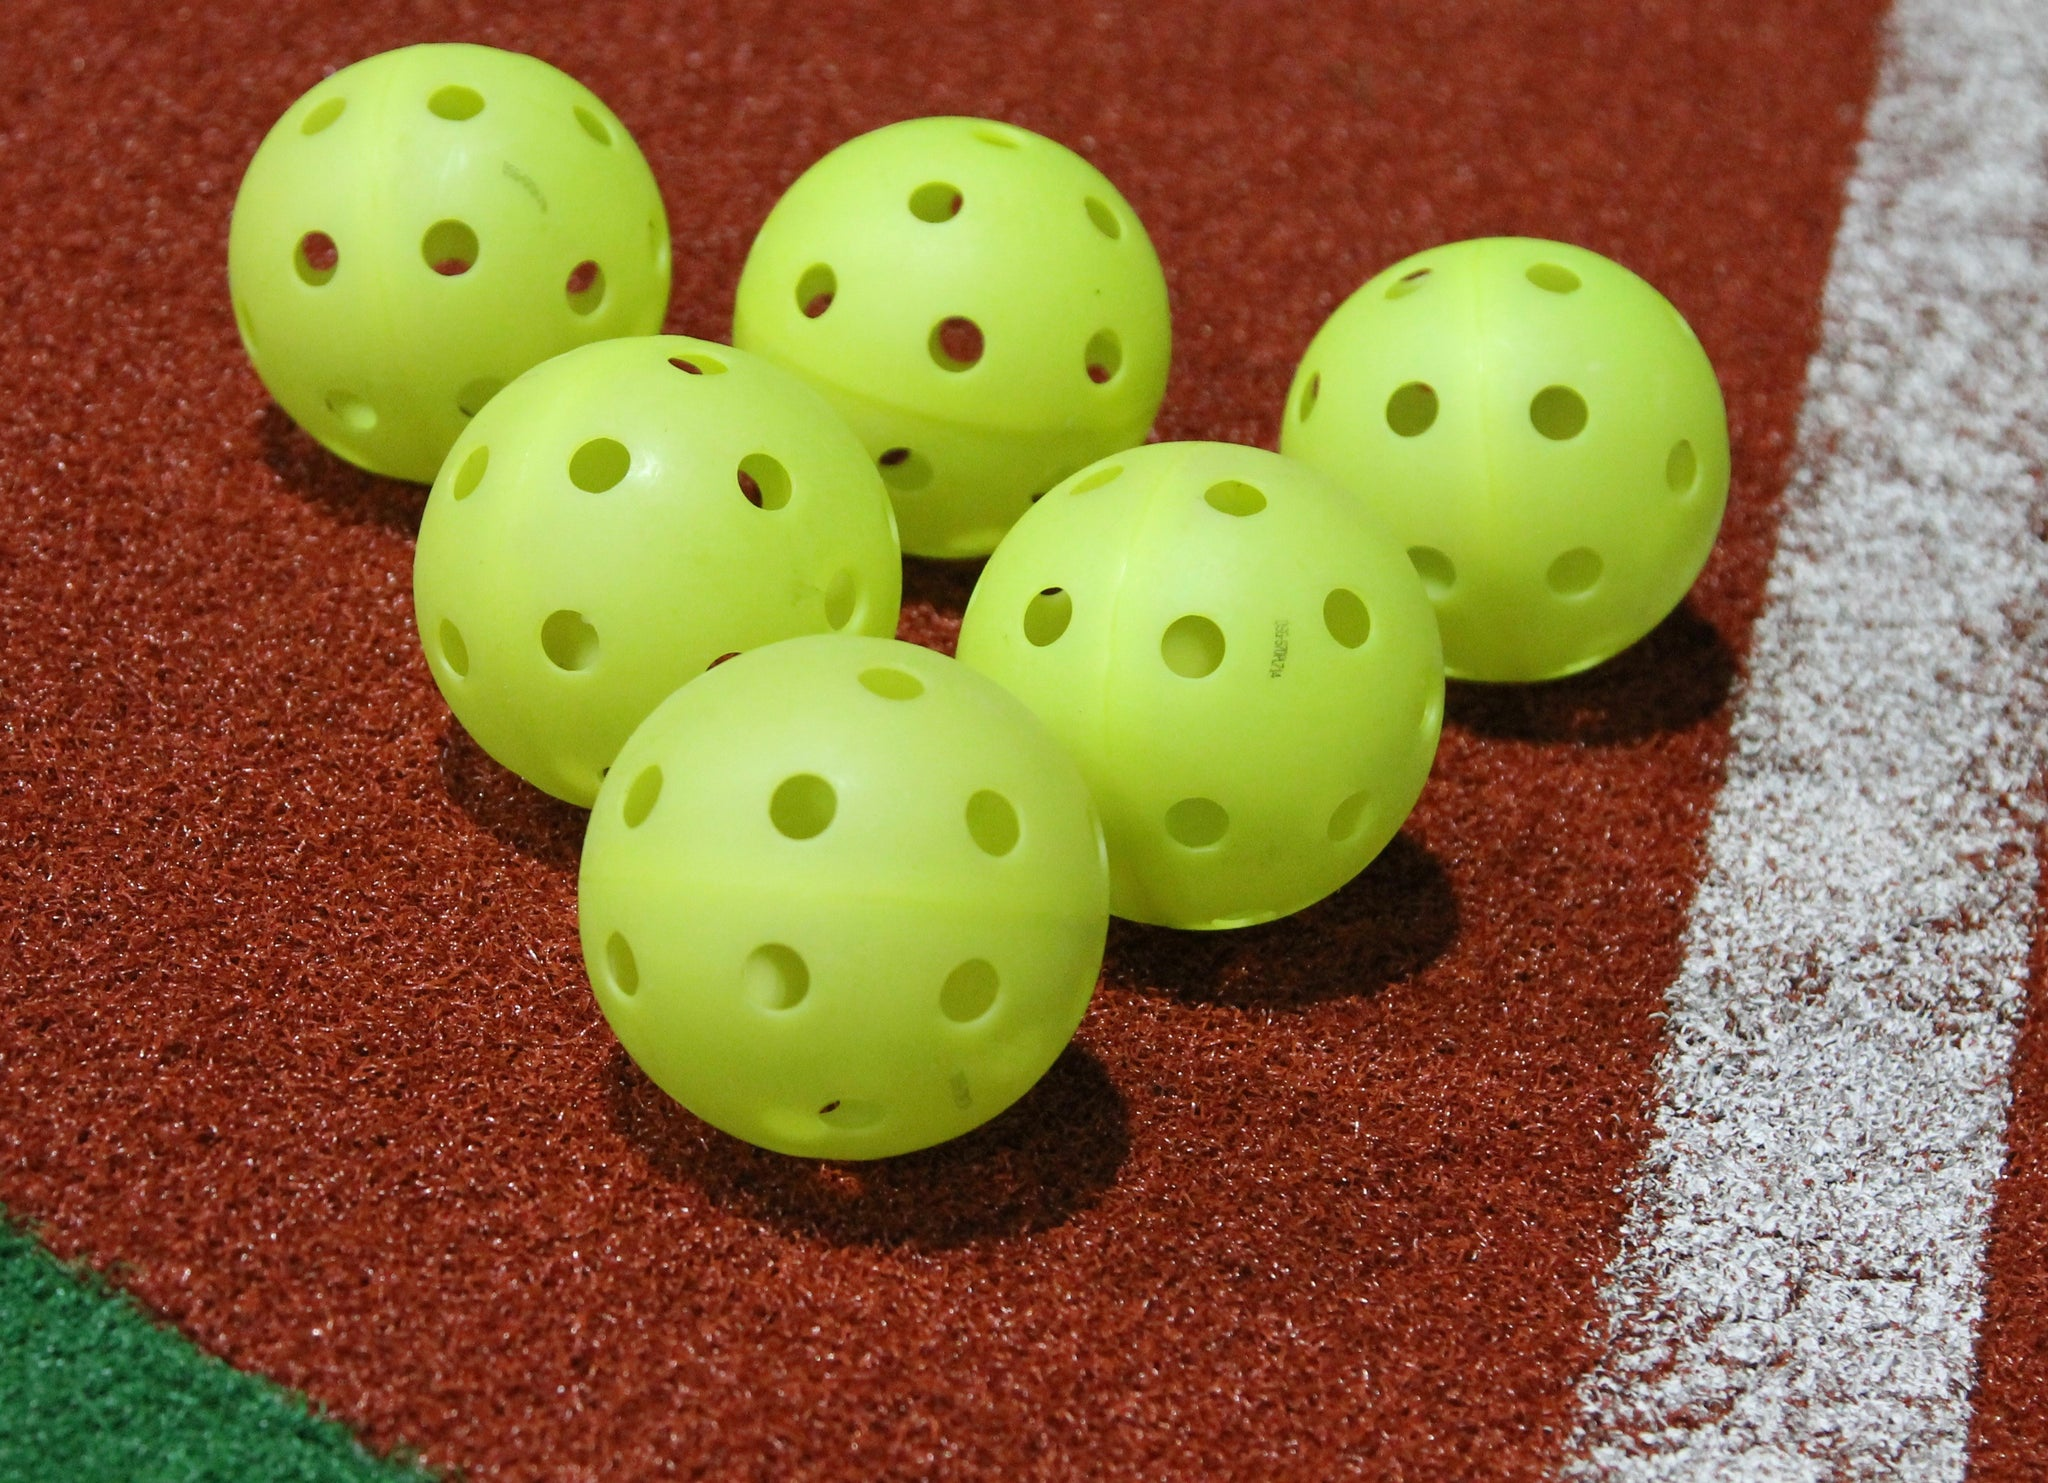 6 Perforated Plastic Balls (Softball Size)